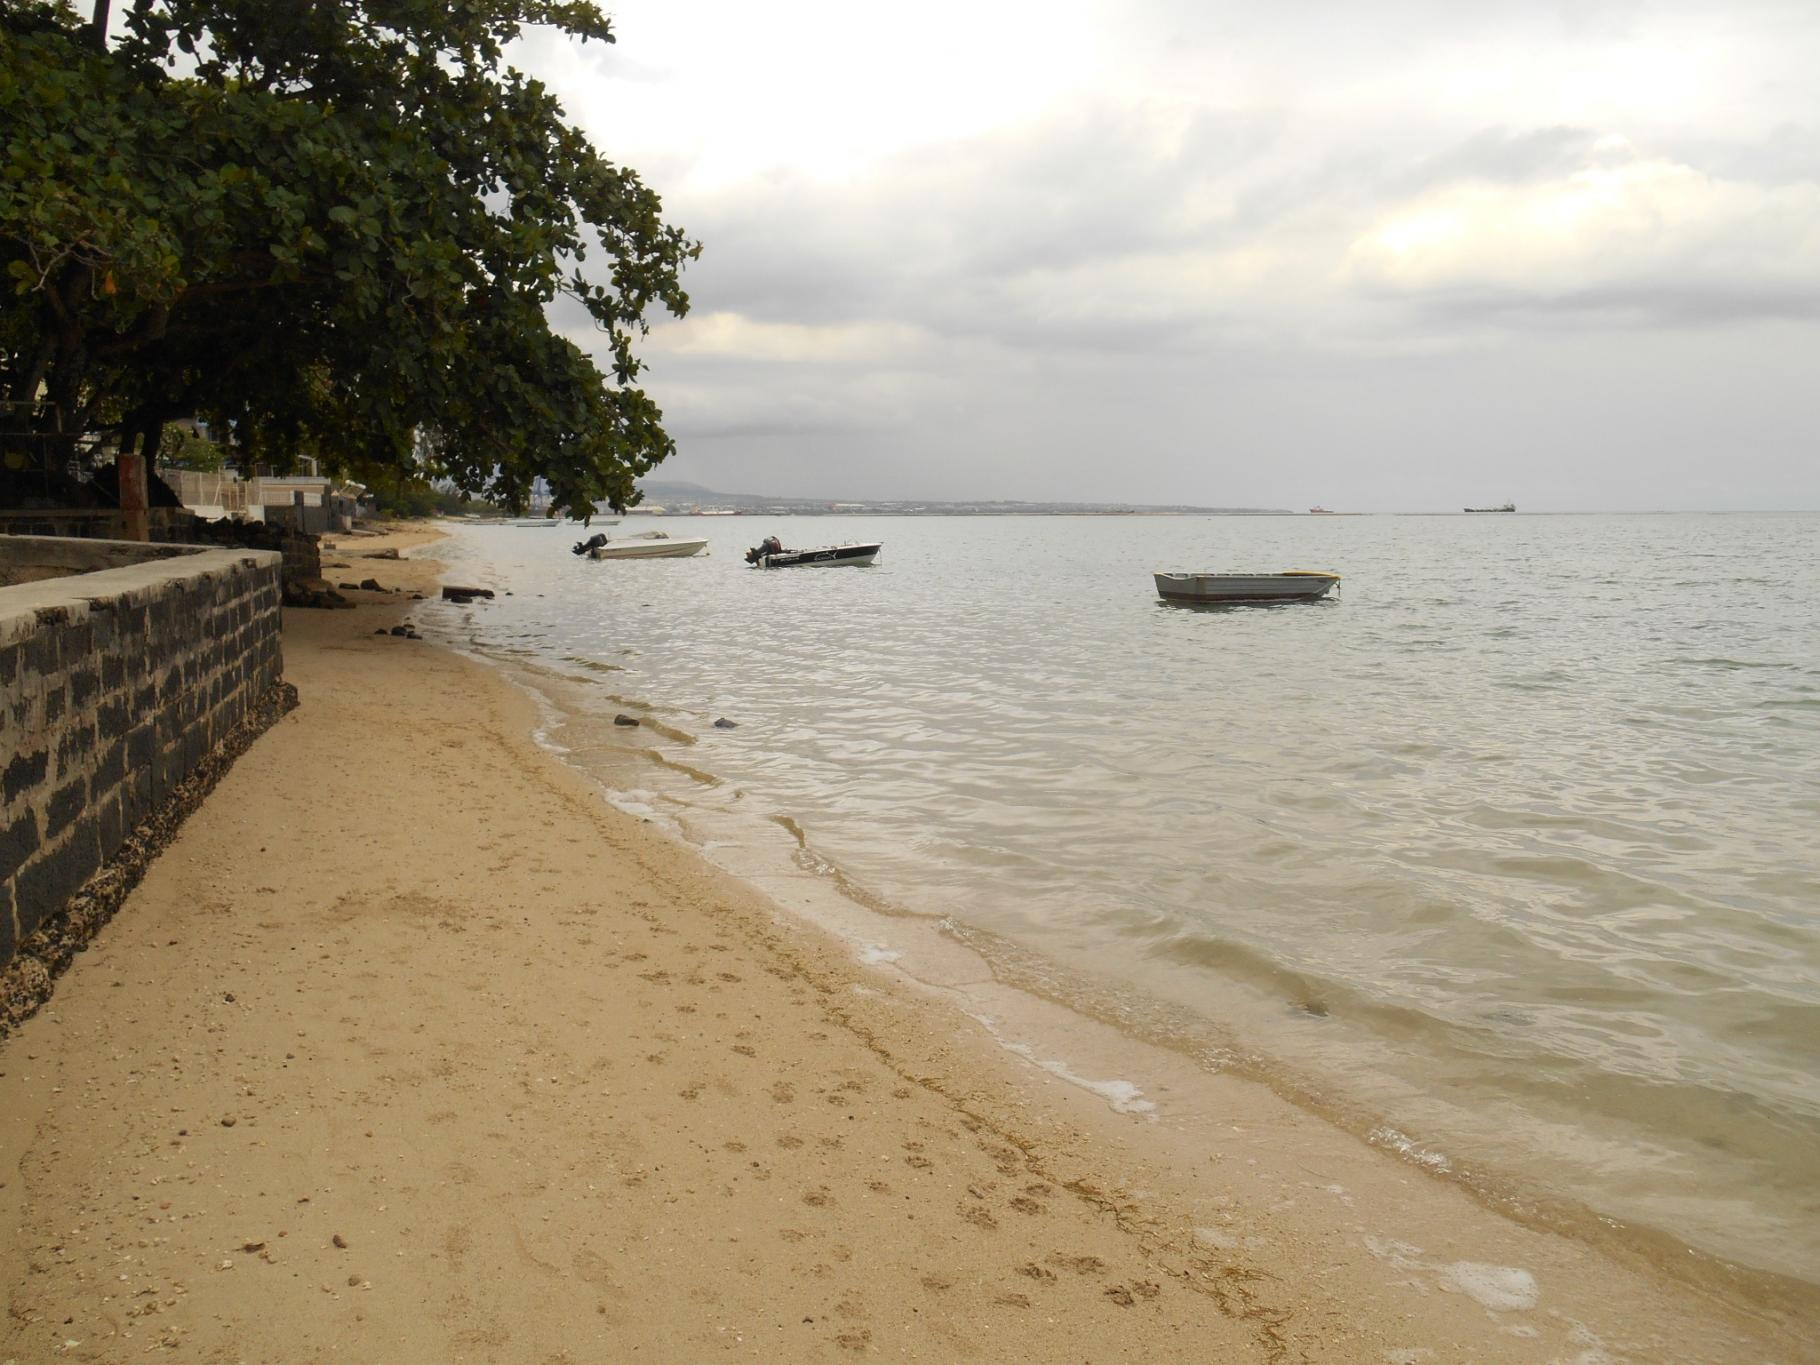 FOR SALE – Nice beachfront plot of land of 312 toises in Baie du Tombeau.